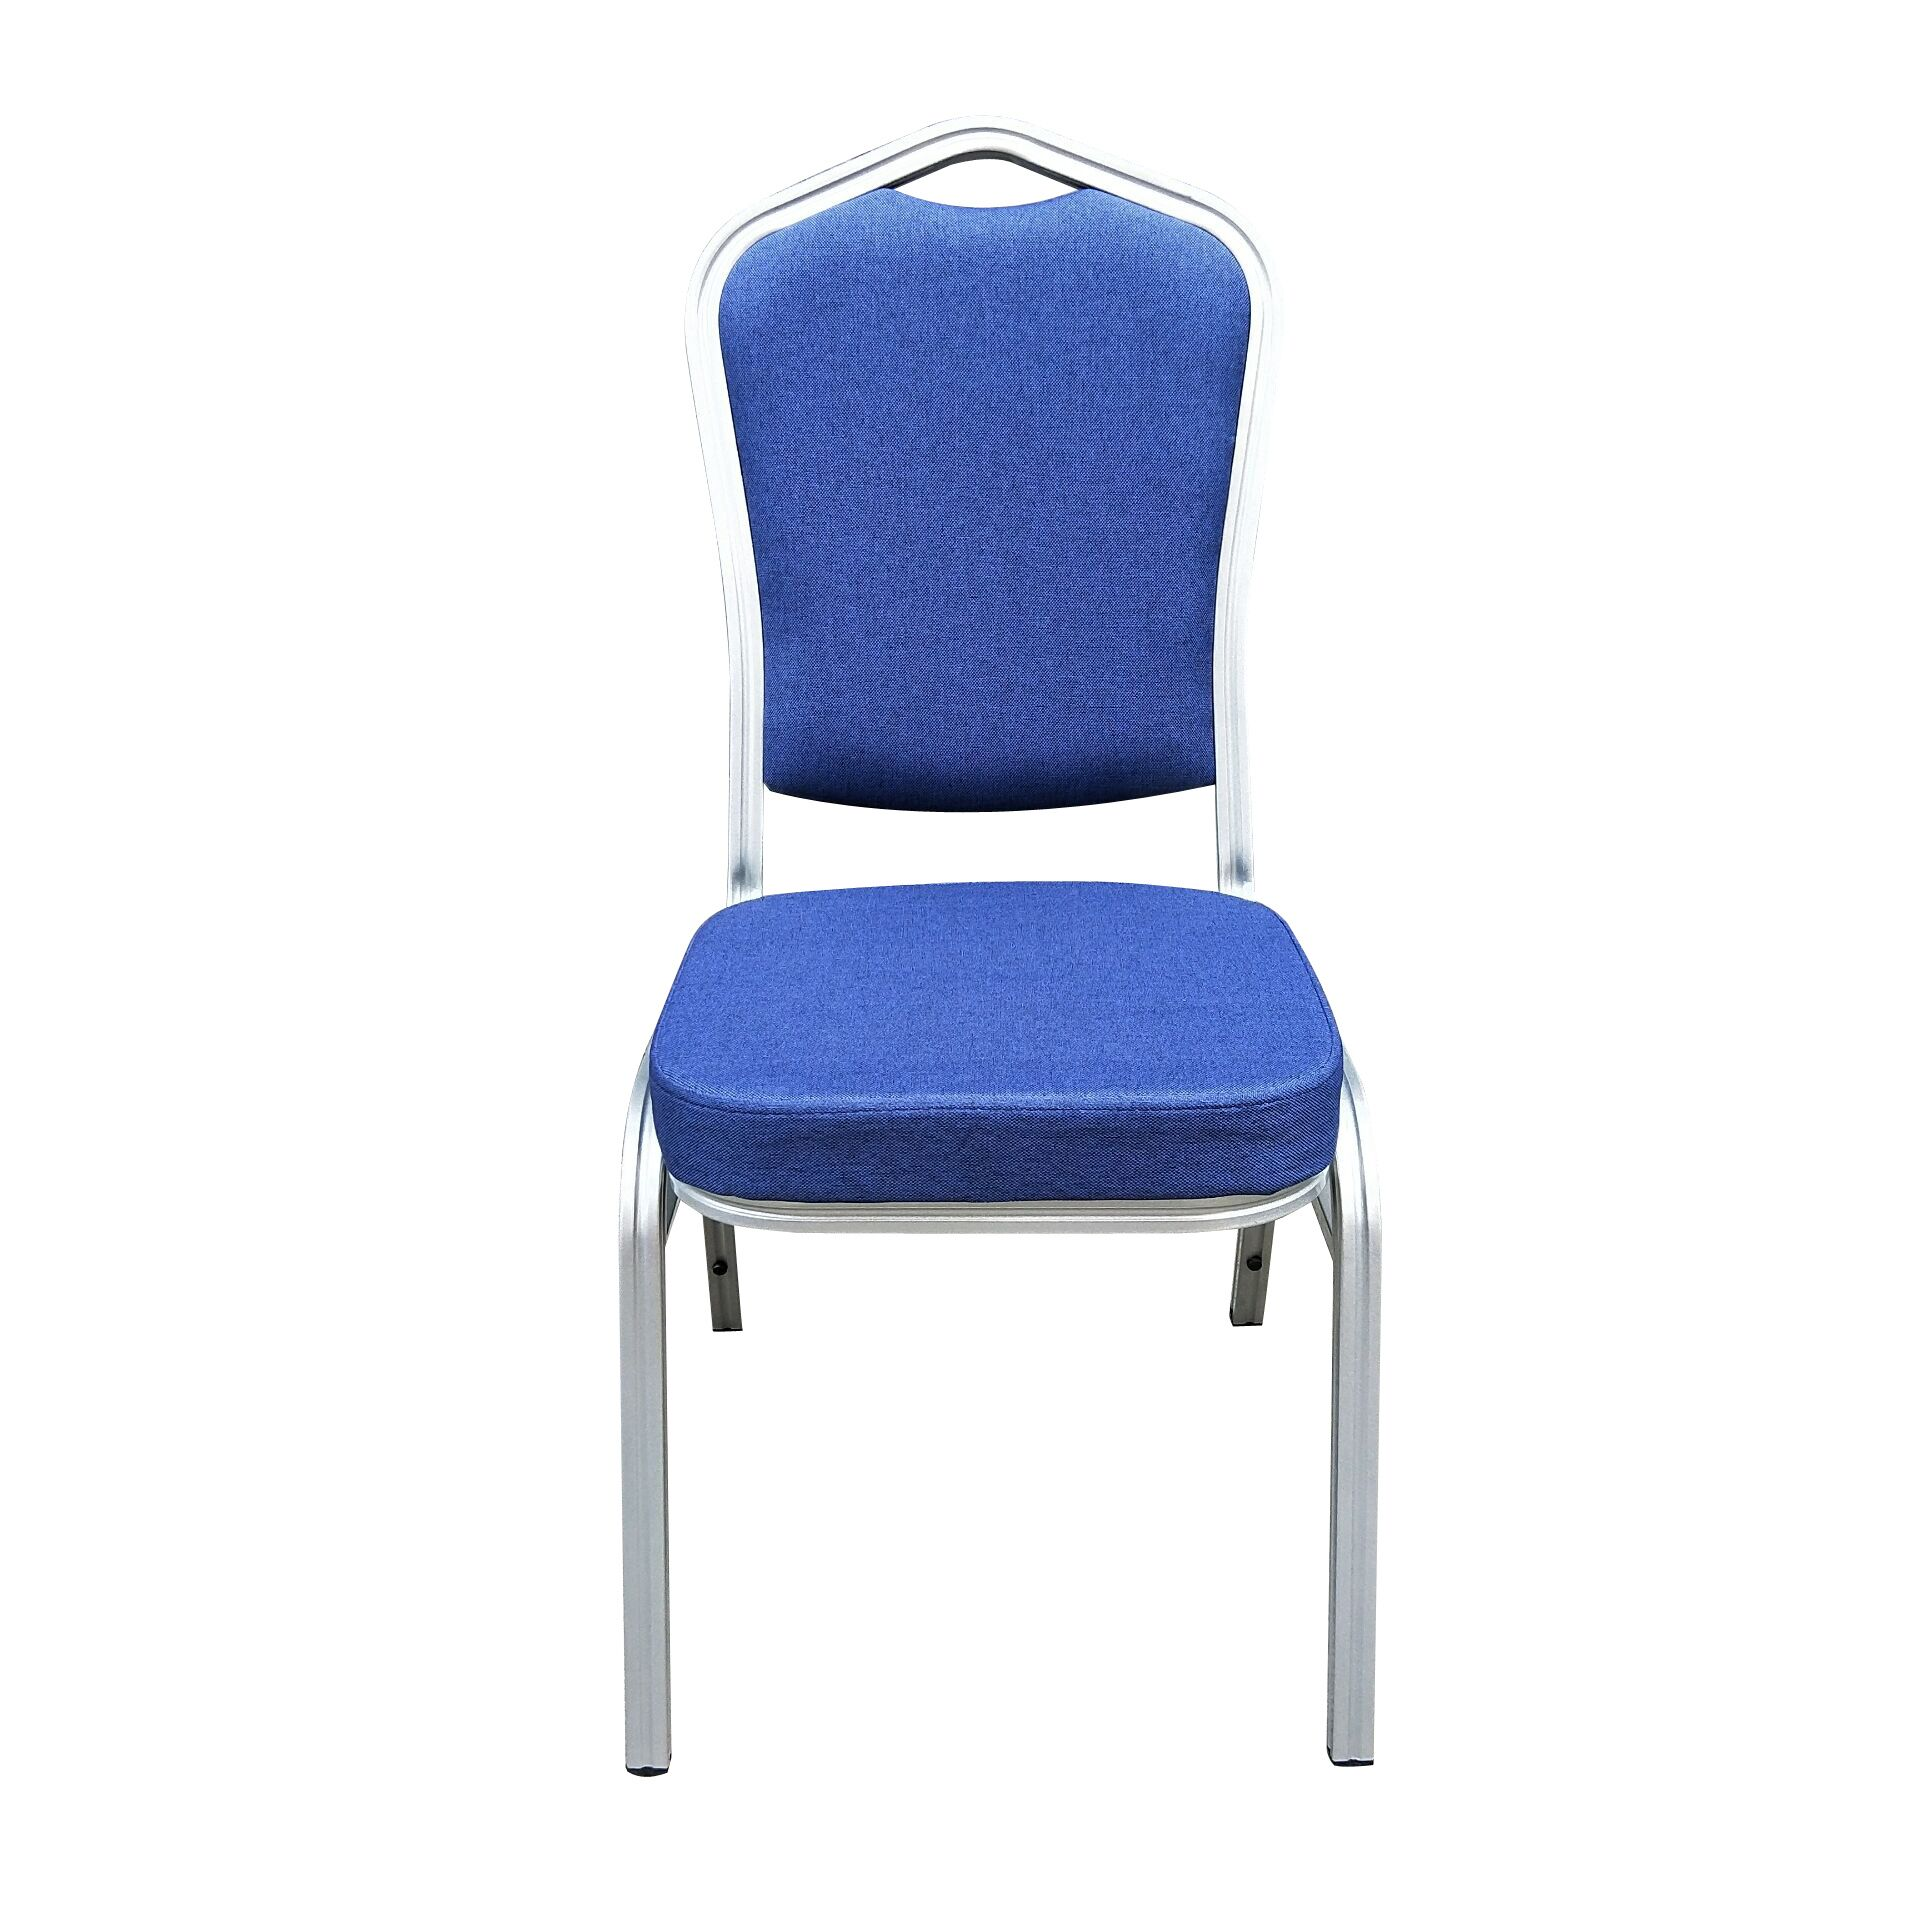 Factory Outlets Best Church Chairs -